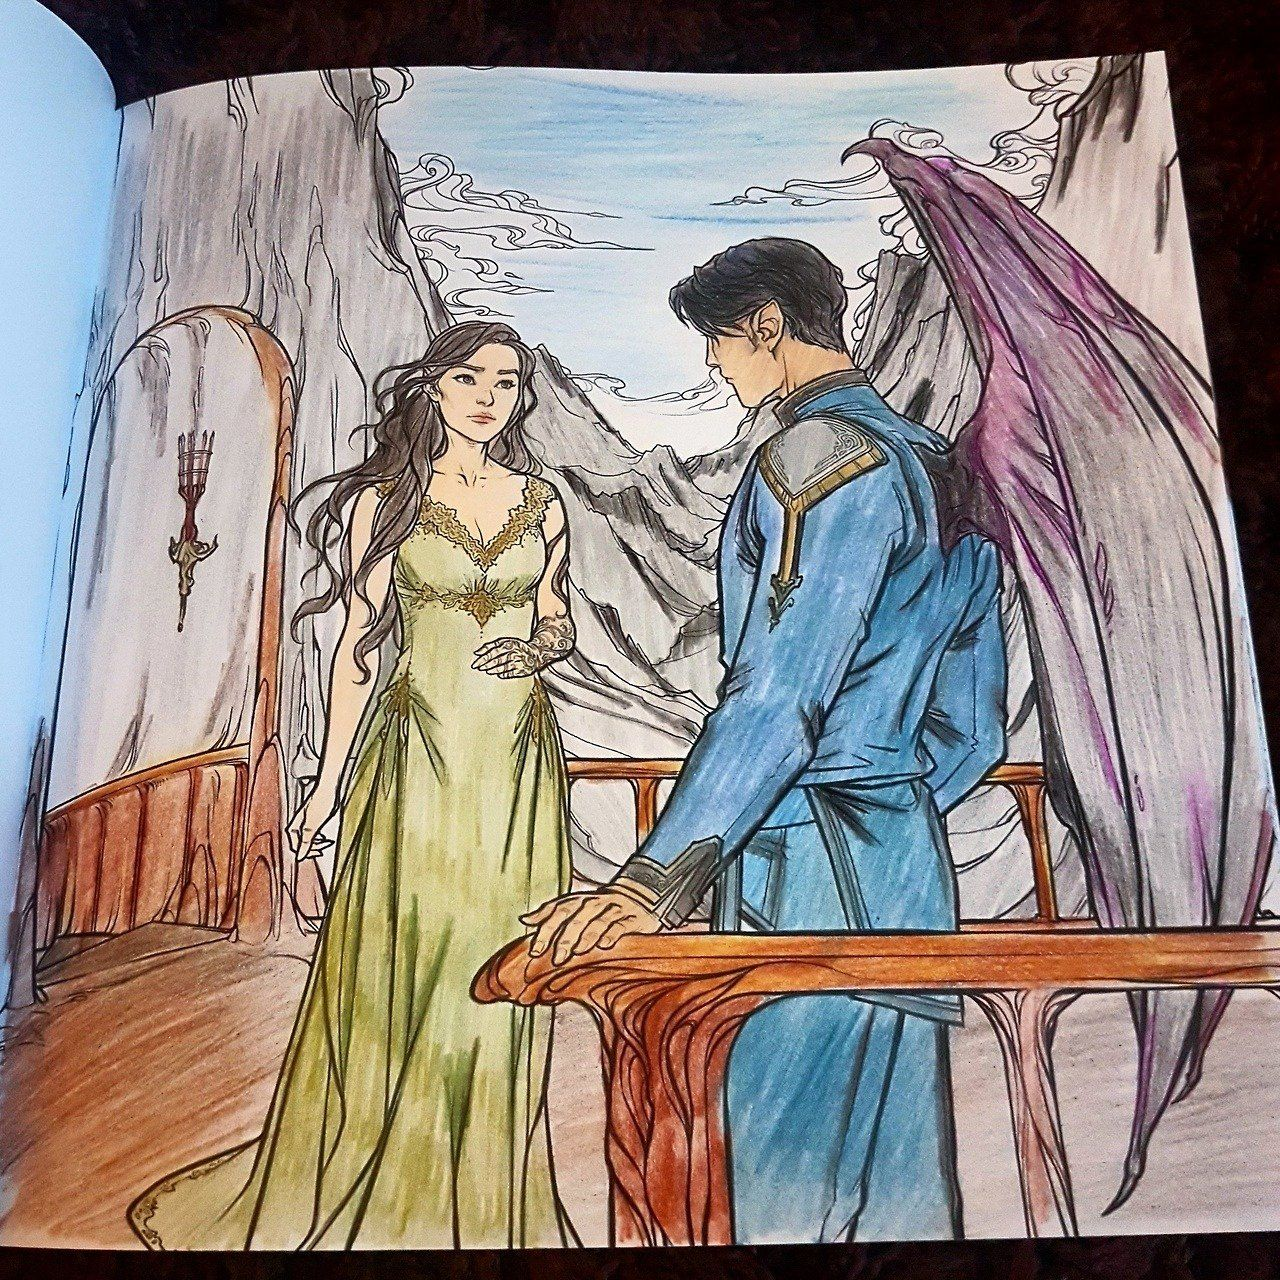 A Court Of Thorns And Roses Coloring Book Best Of A Court Thorns And Roses Coloring Book Pages Shark Coloring Pages Animal Coloring Books Kids Coloring Books